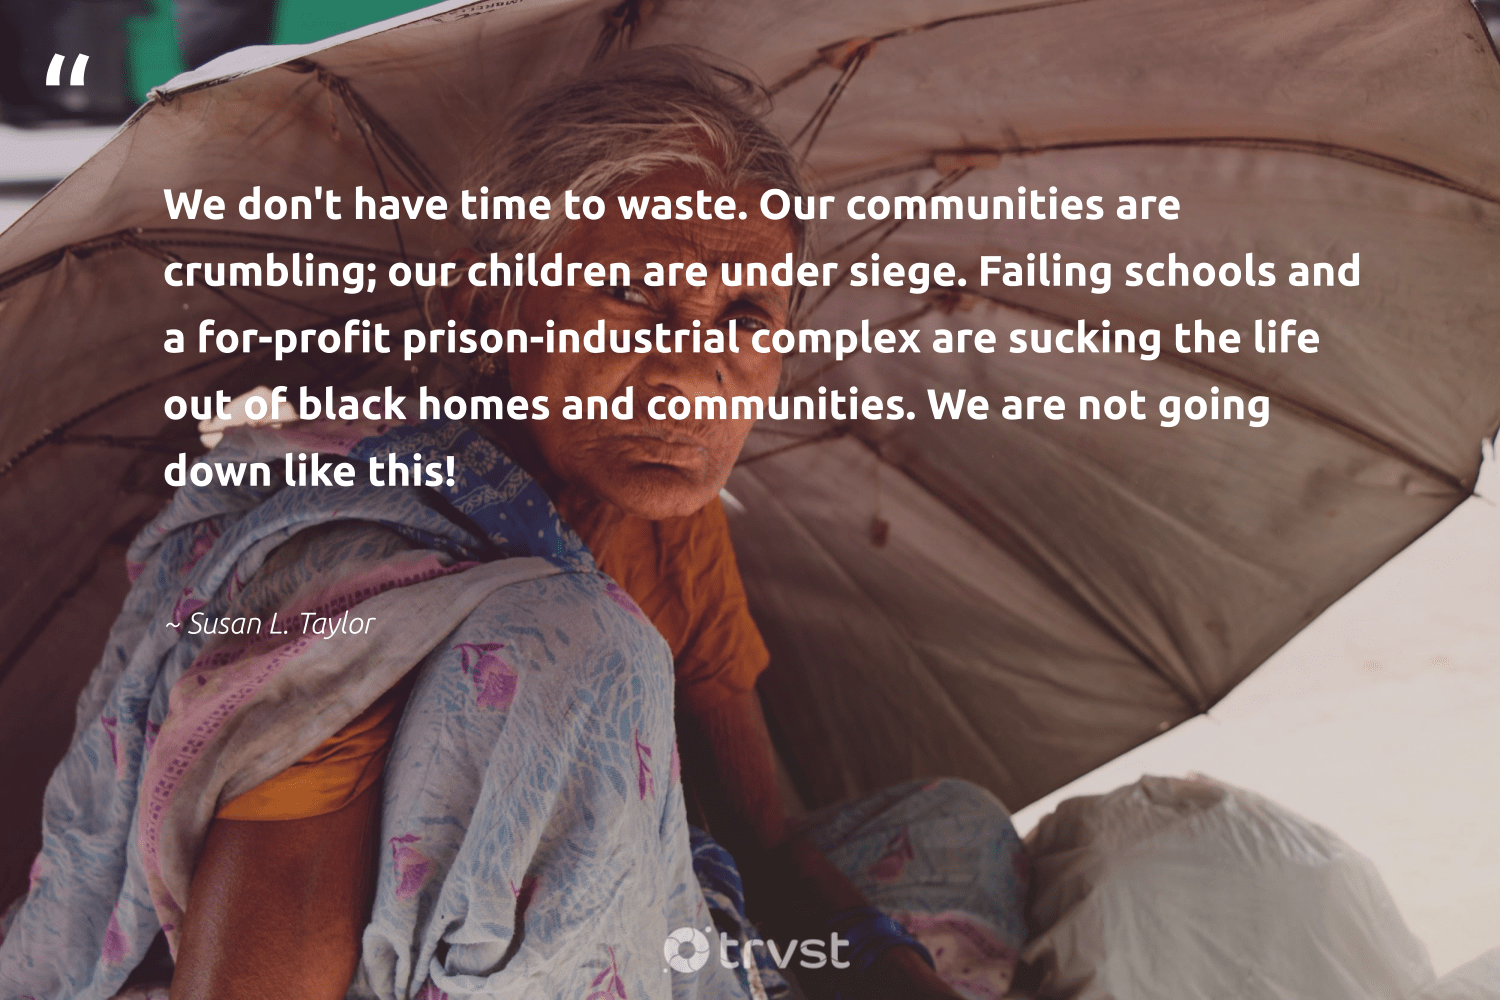 """We don't have time to waste. Our communities are crumbling; our children are under siege. Failing schools and a for-profit prison-industrial complex are sucking the life out of black homes and communities. We are not going down like this!""  - Susan L. Taylor #trvst #quotes #waste #communities #children #makeadifference #socialchange #weareallone #planetearthfirst #bethechange #dotherightthing #giveback"